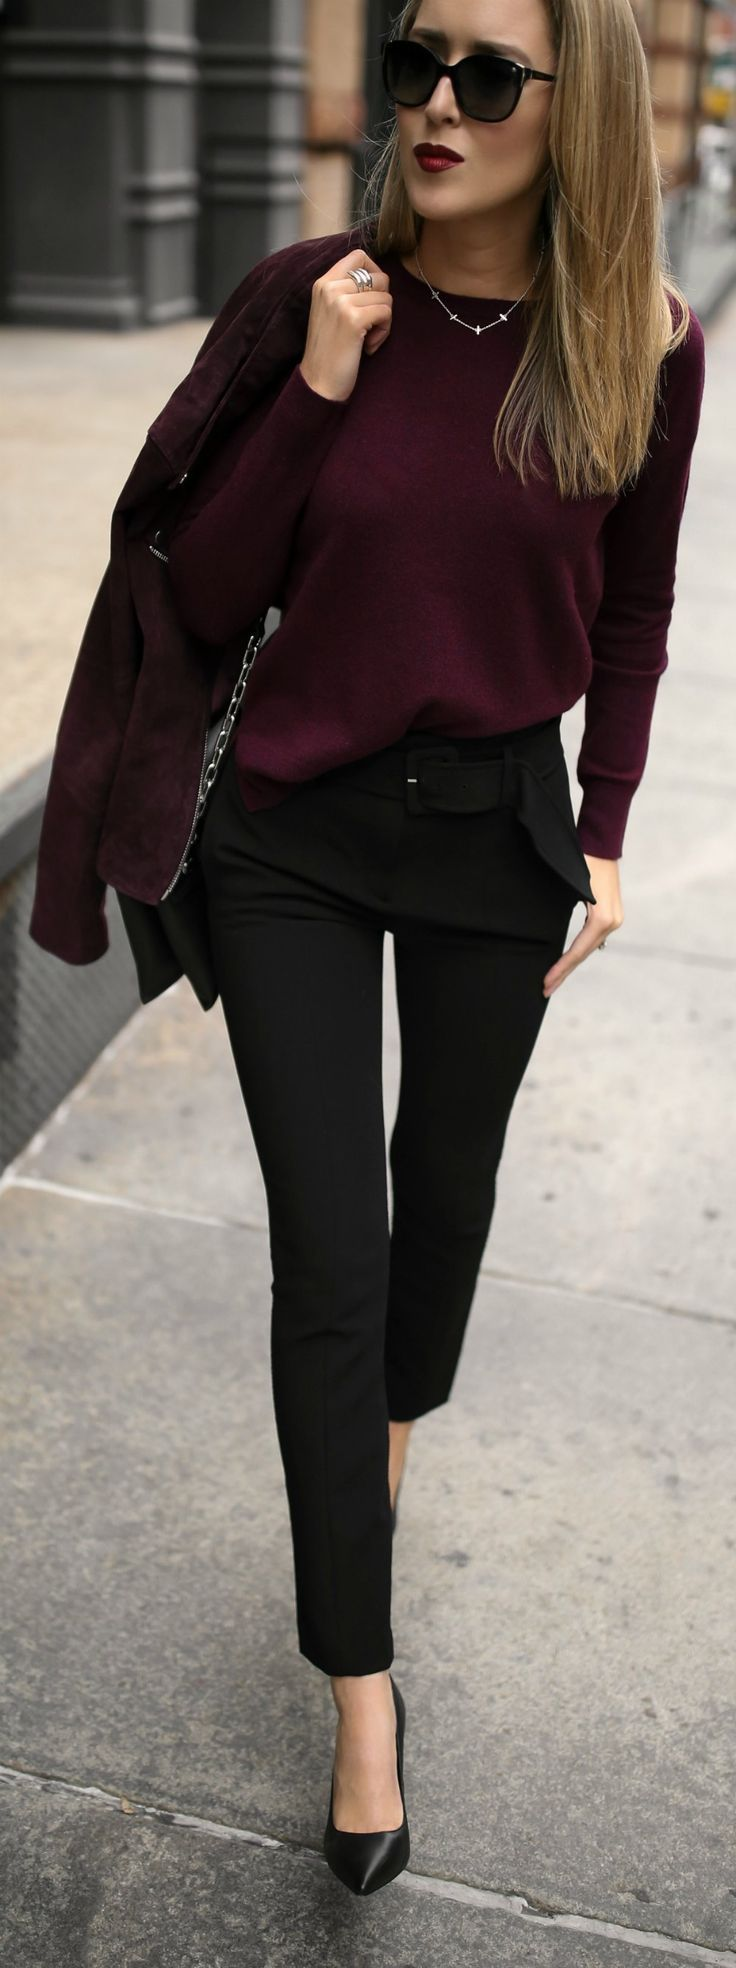 3 FALL STAPLES EVERY WORKING GIRL NEEDS // Suede burgundy moto ...